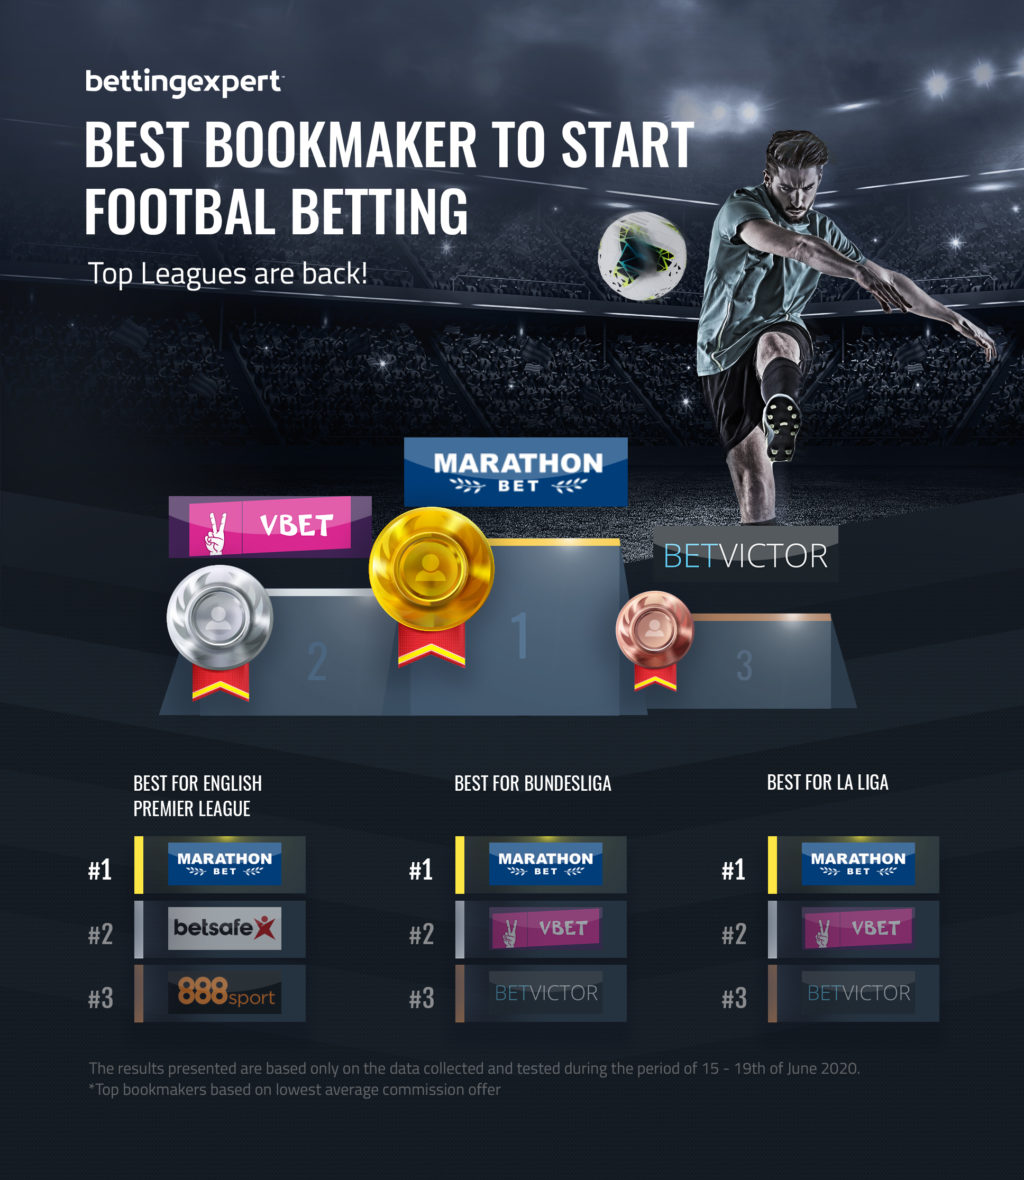 Best Bookmaker to bet again on football